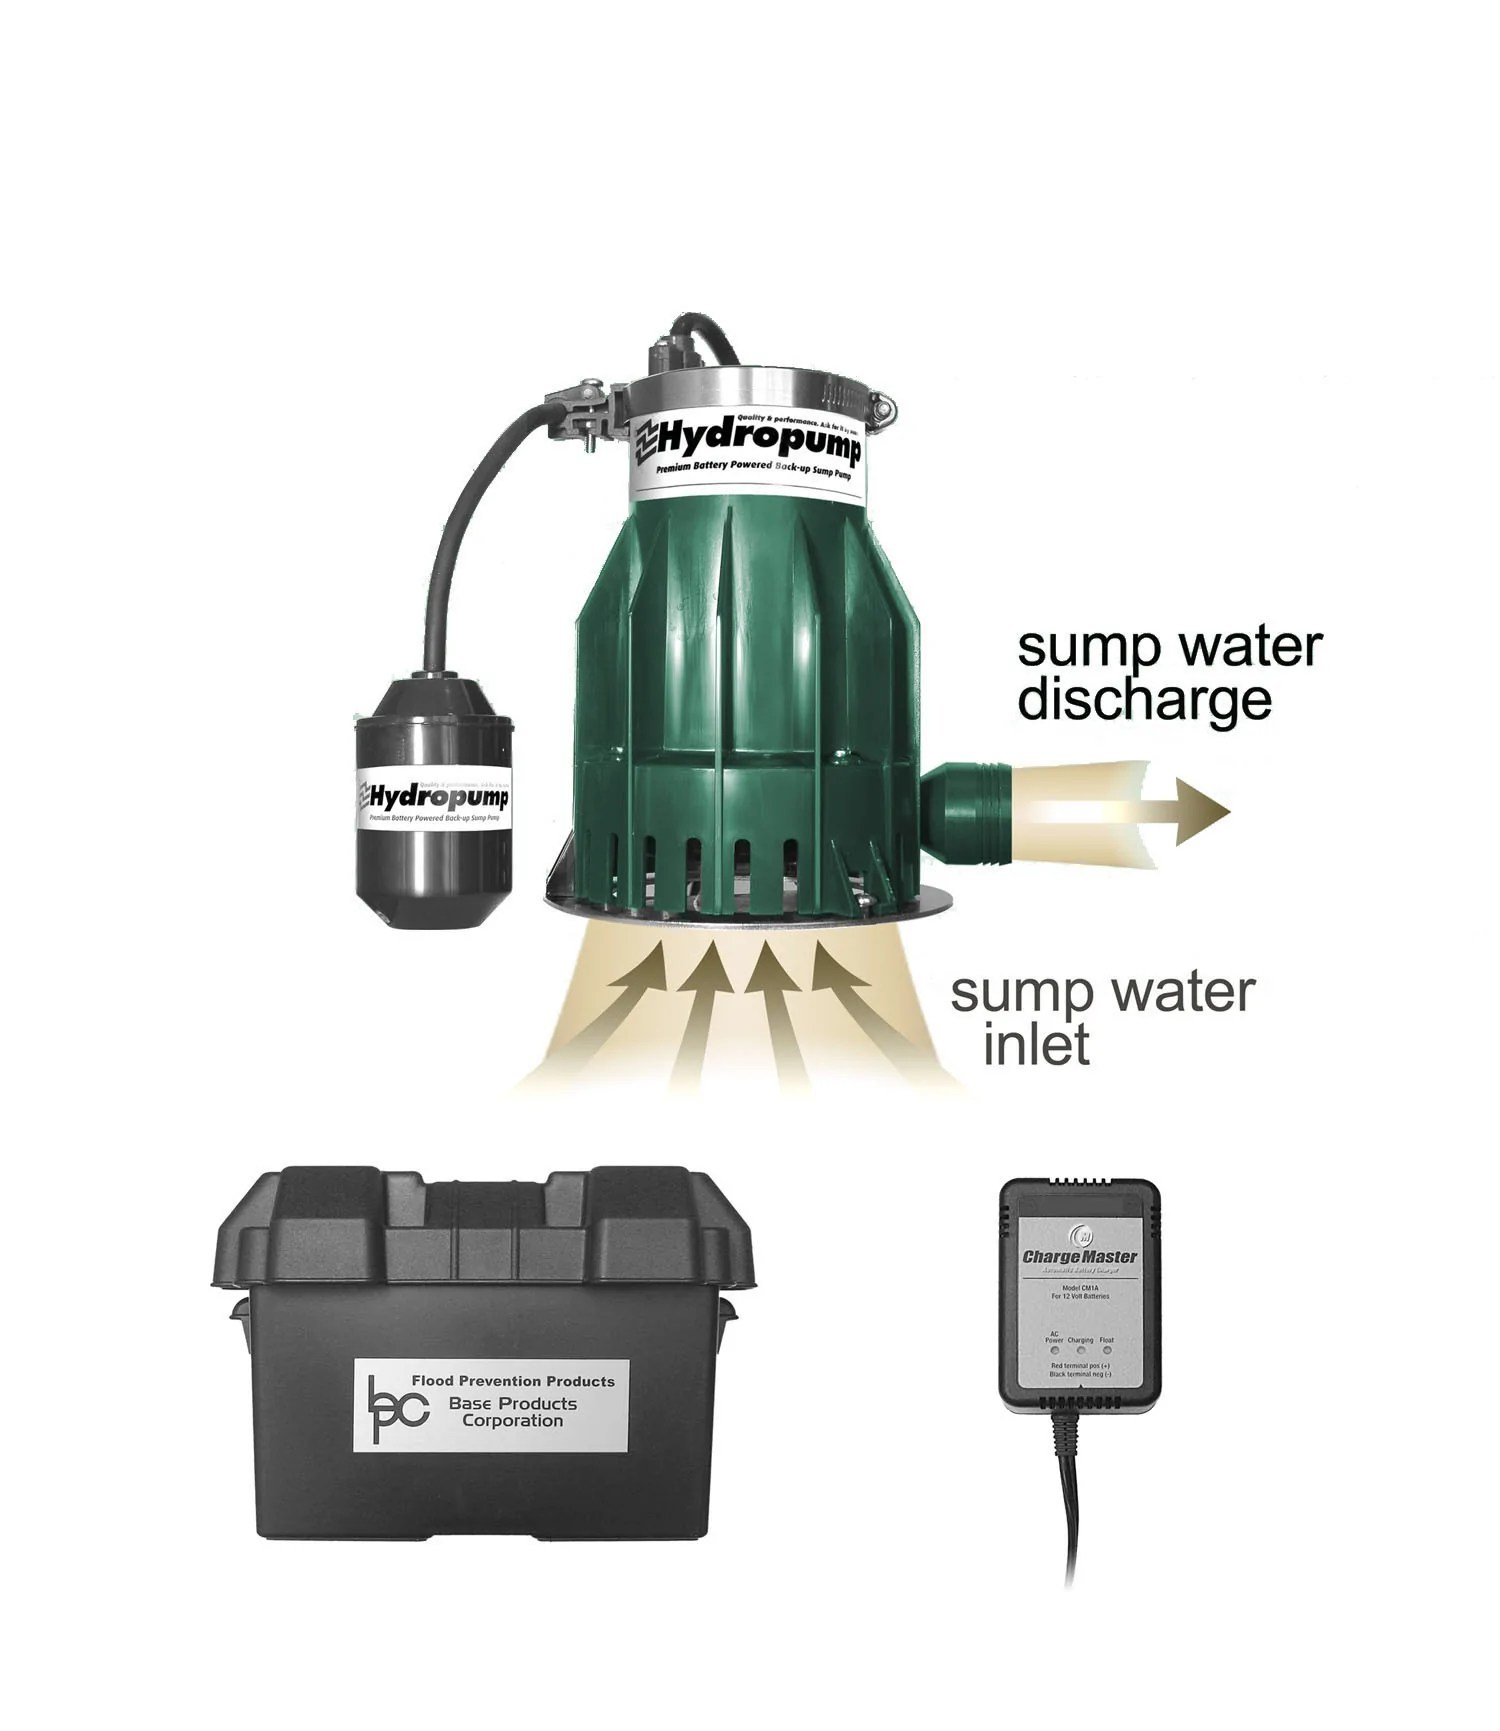 hight resolution of product image hydropump dh1800 sump pump with battery backup sump pump with battery backup sump pump with battery backup